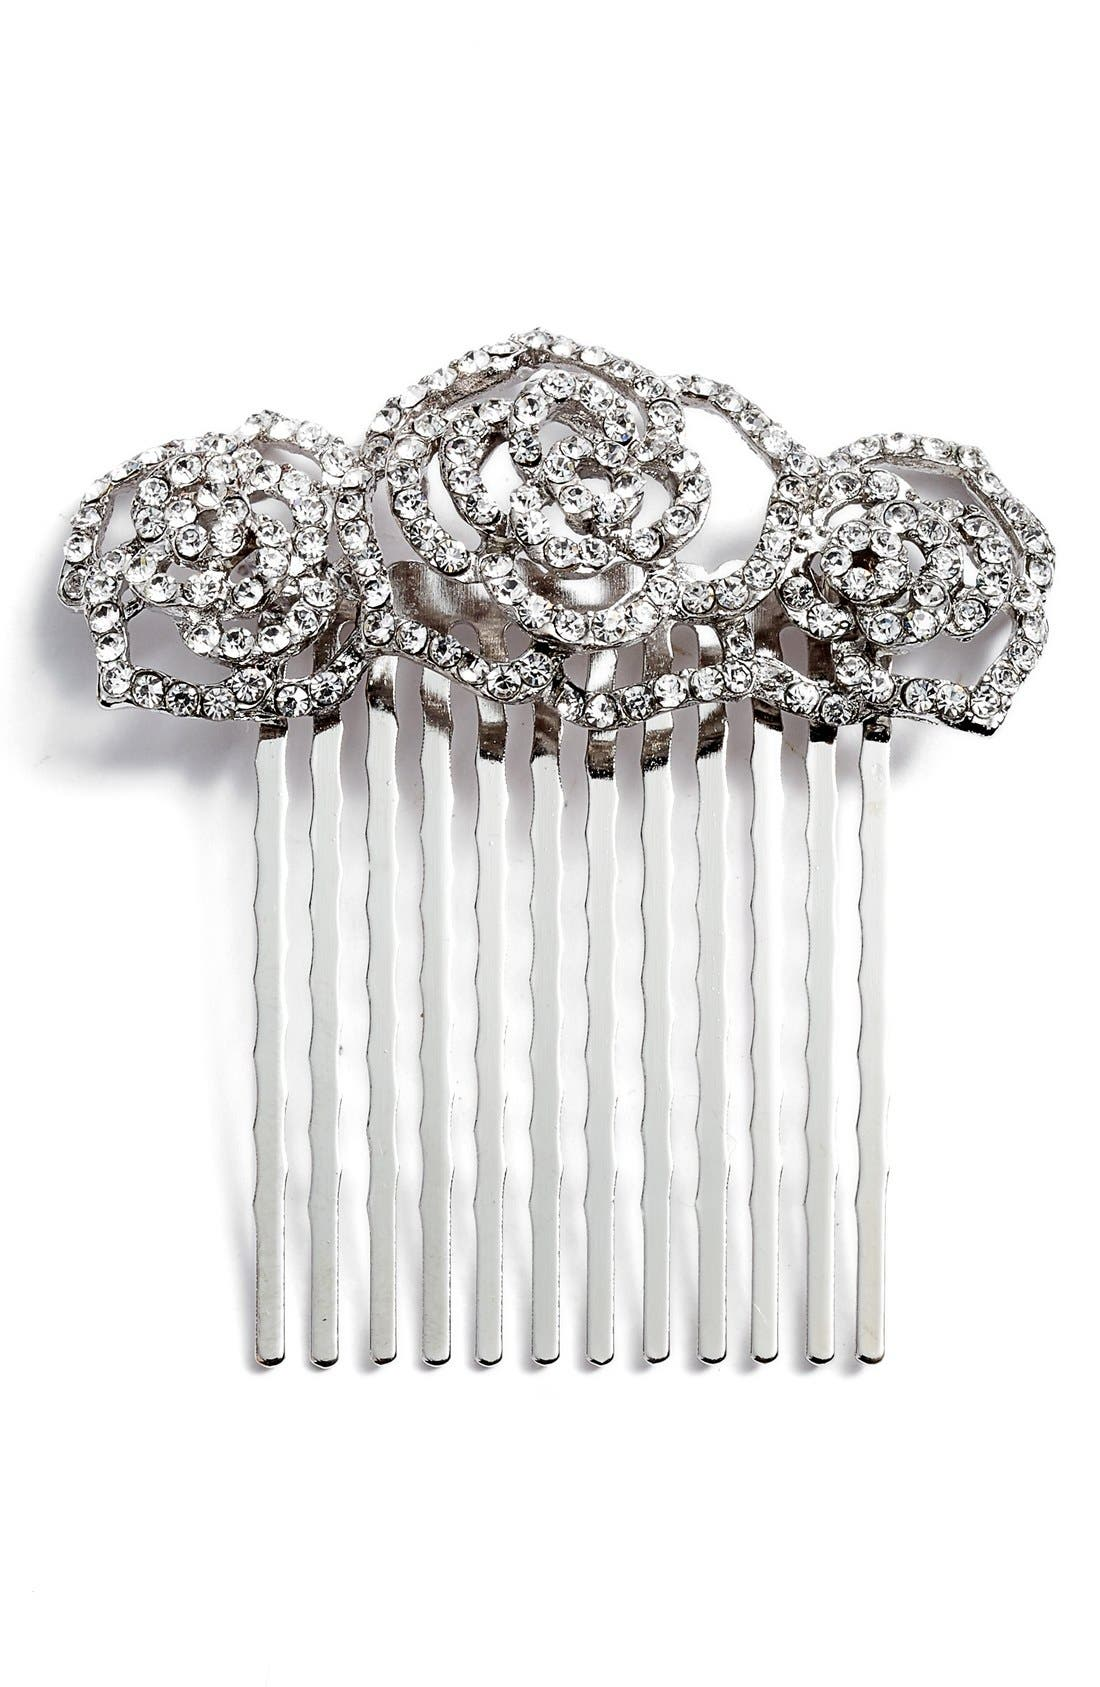 Rosie Posie Crystal Comb,                             Main thumbnail 1, color,                             Silver